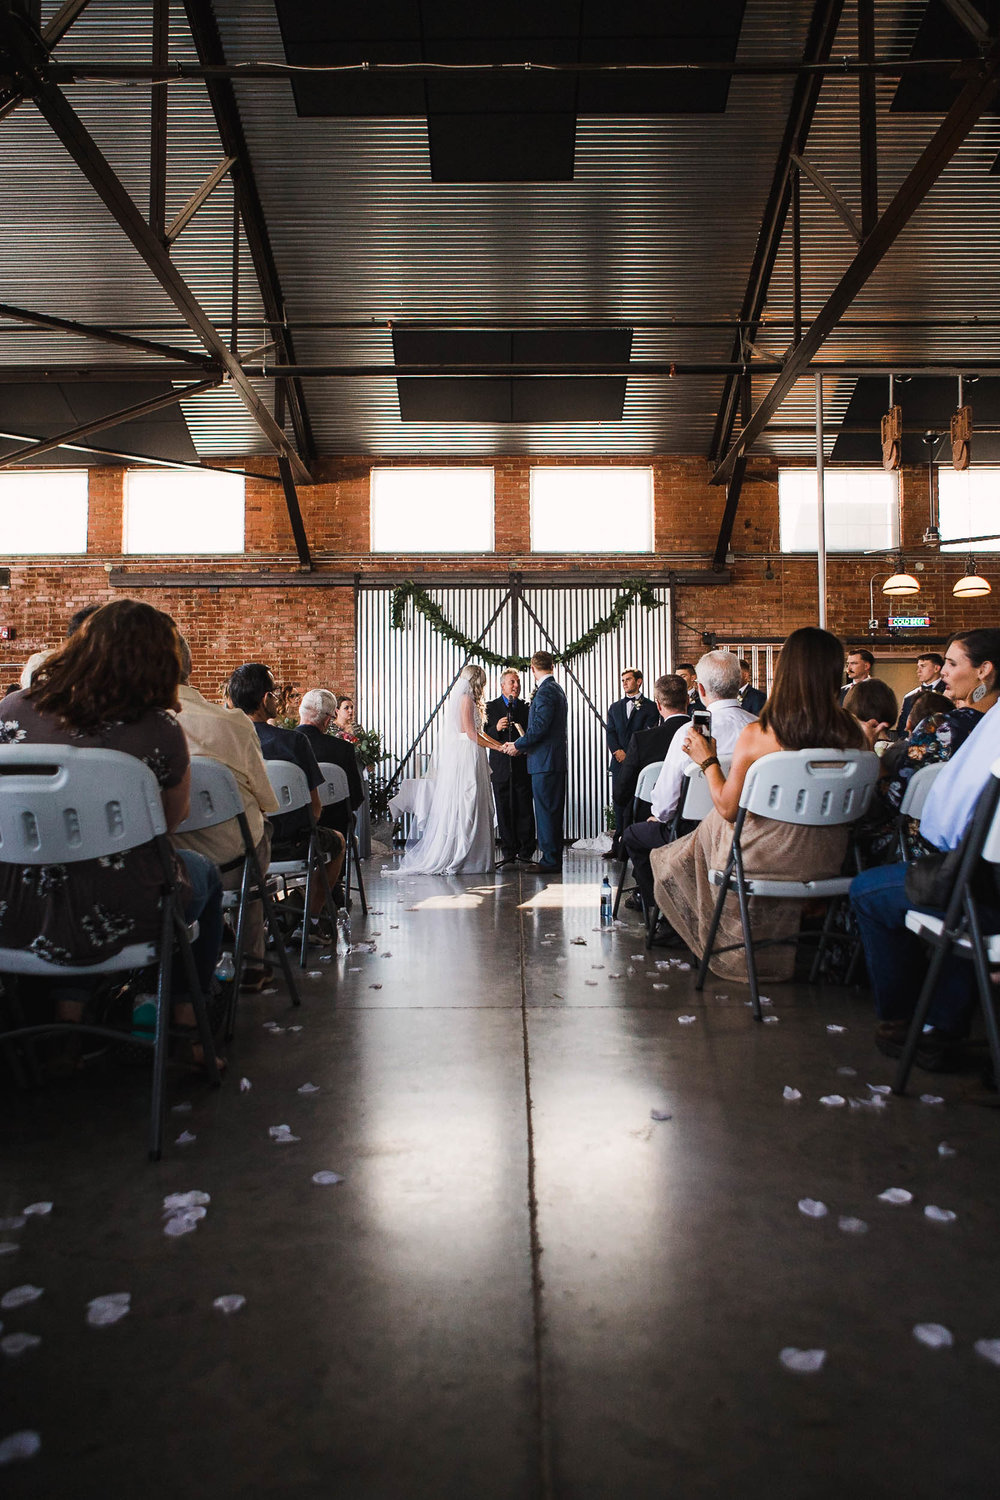 The Hangar Bar and Grill Casper Wyoming Wedding Ceremony